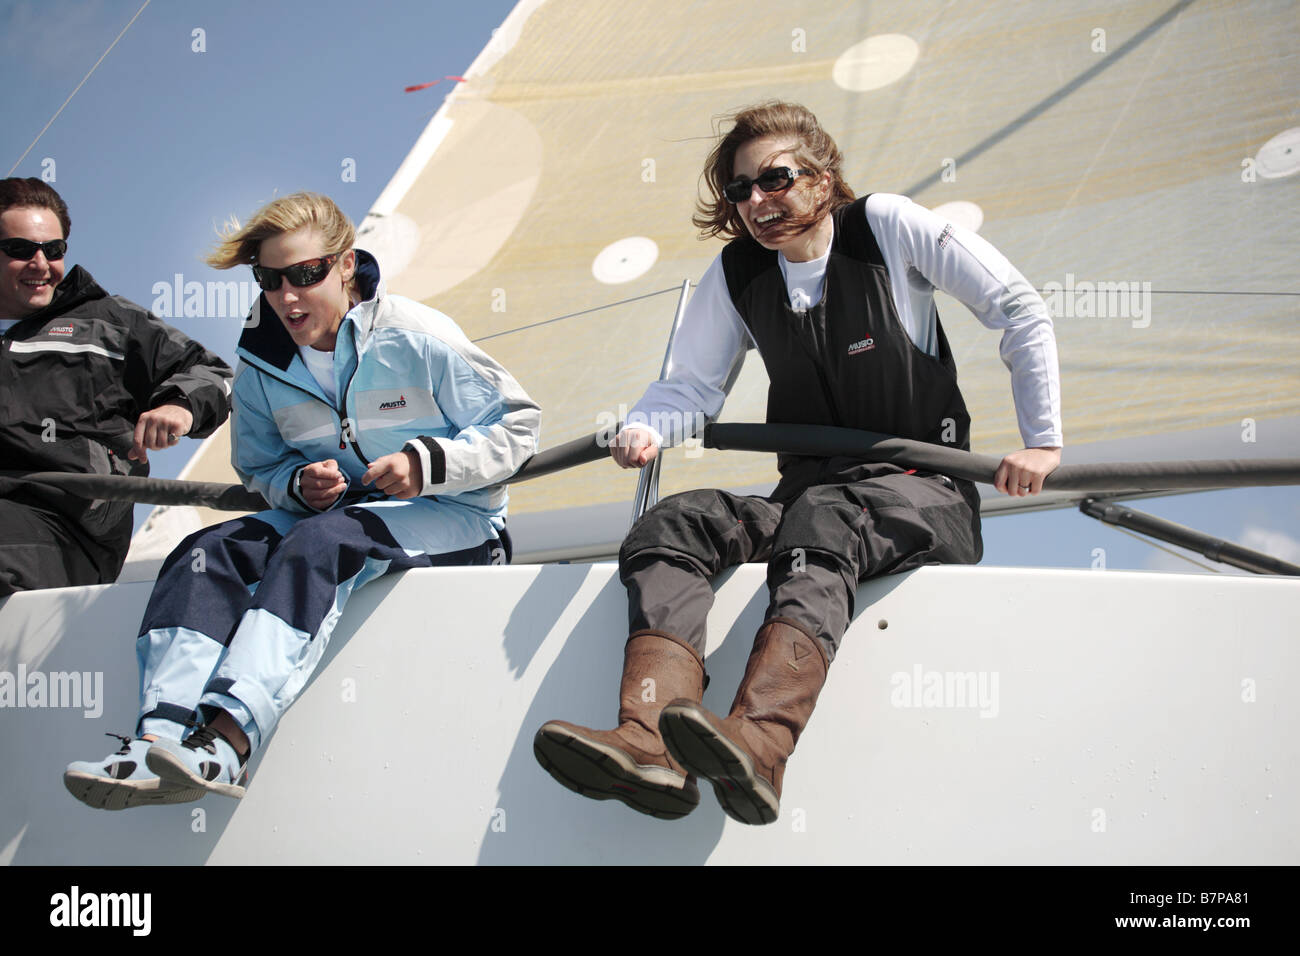 3 sailors, 2 female 1 male having fun on a yacht. - Stock Image